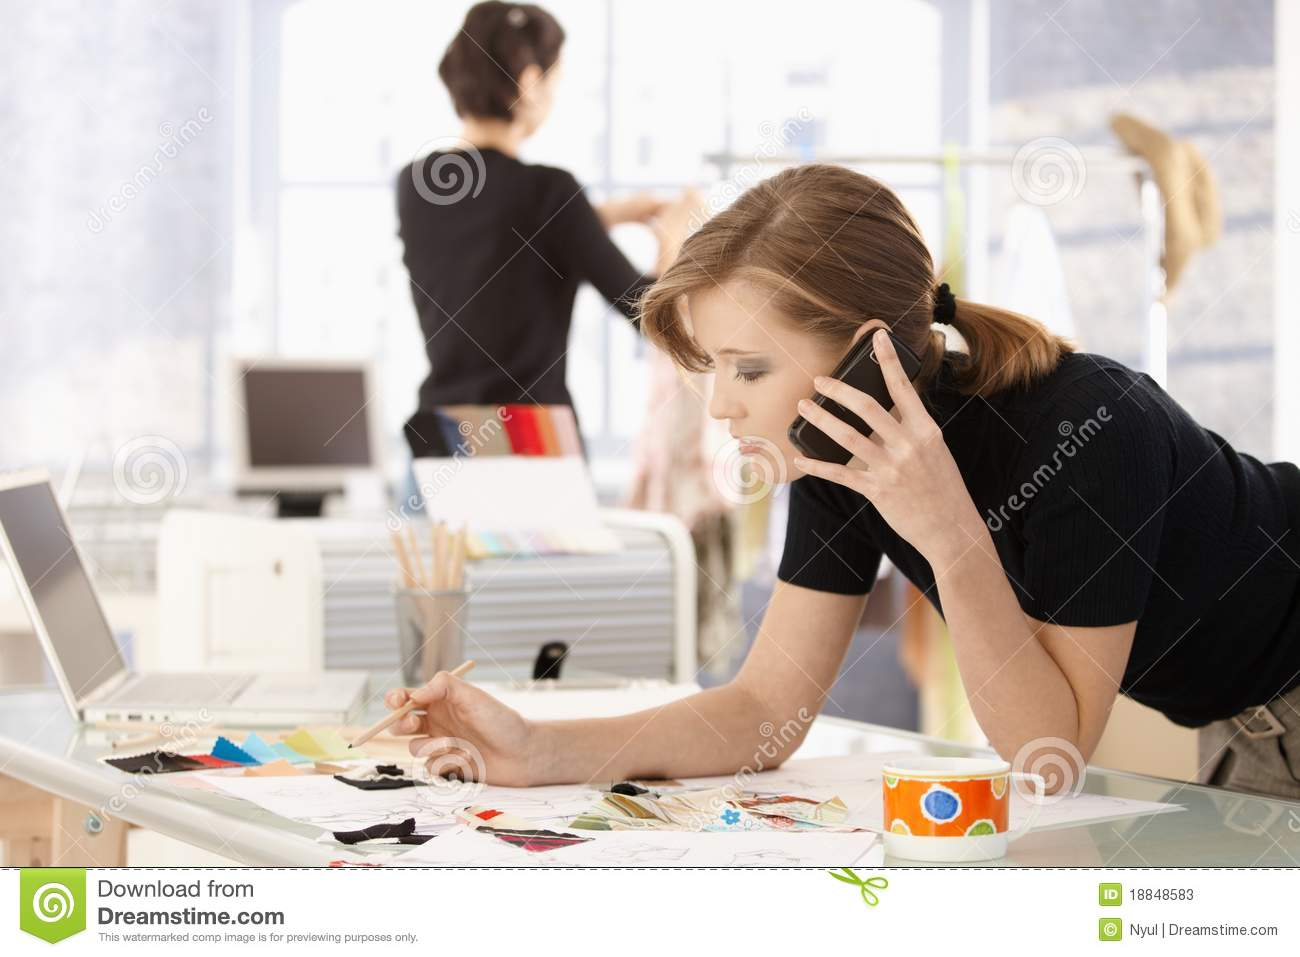 Fashion Designer In Office Stock Photos Image 18848583